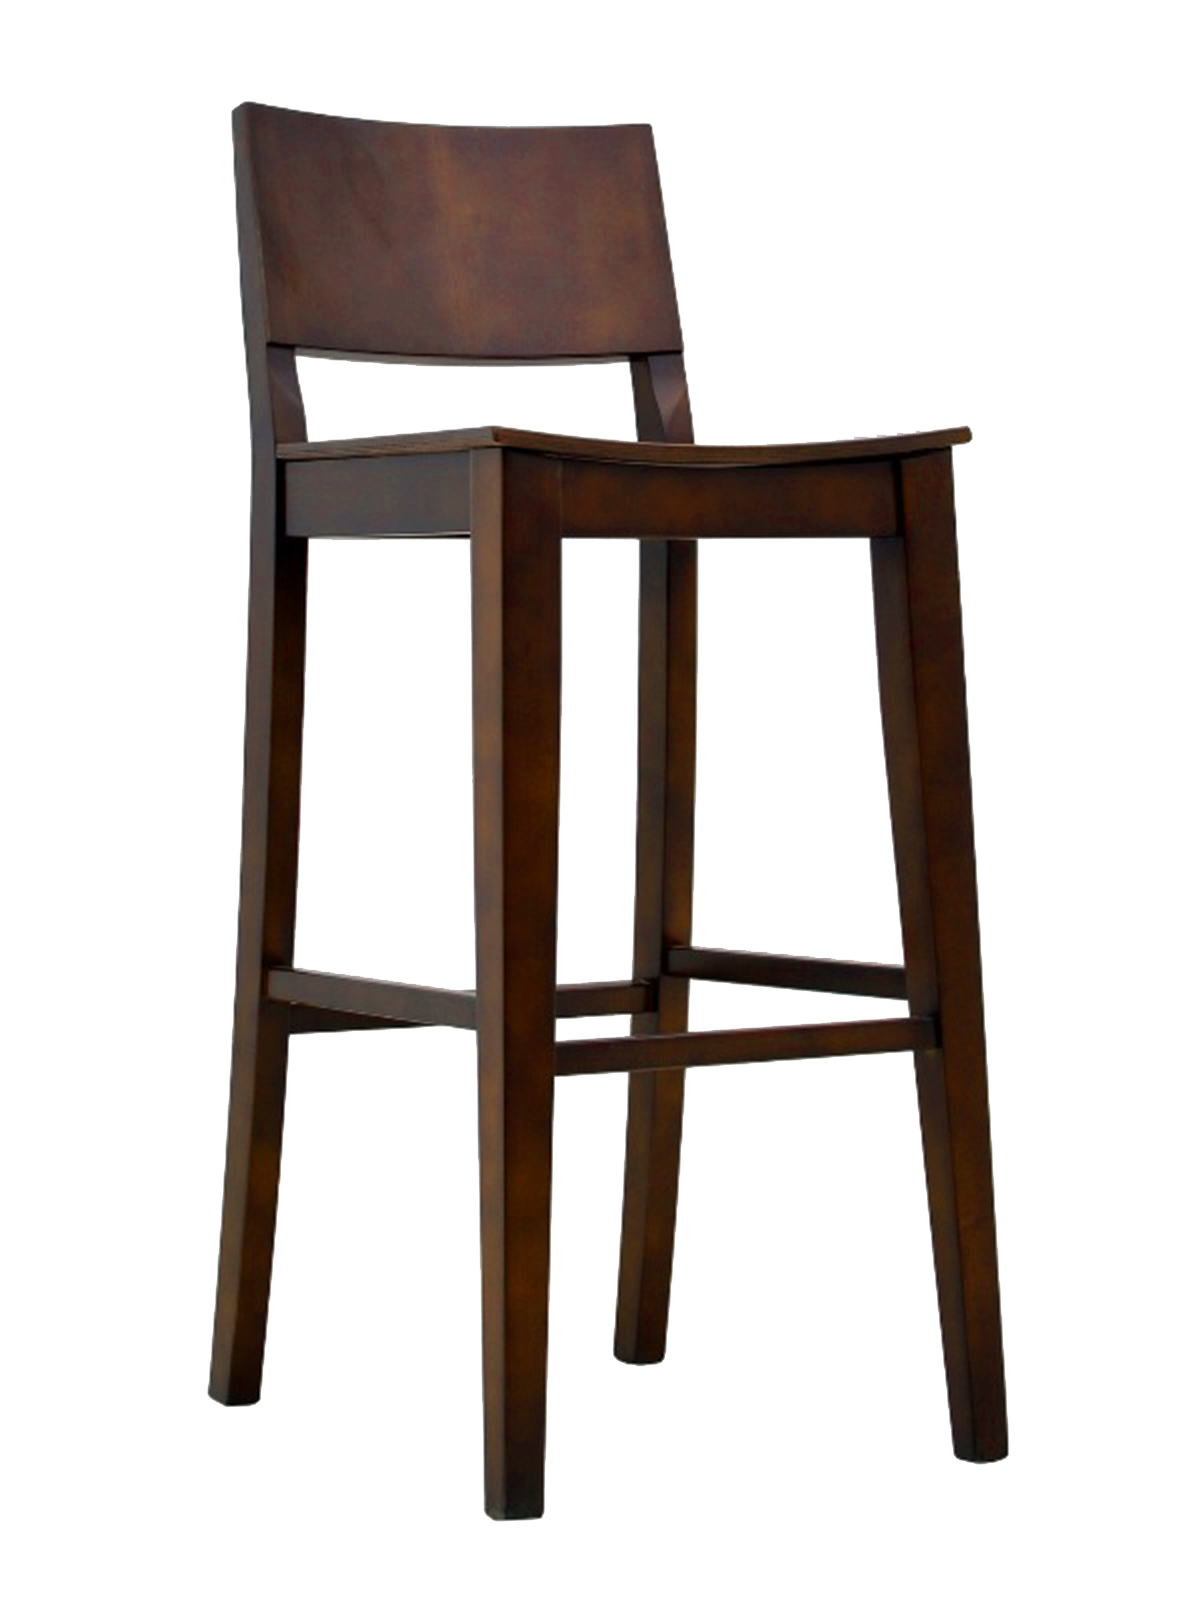 Oak Street WB-305-WA bar stool, indoor